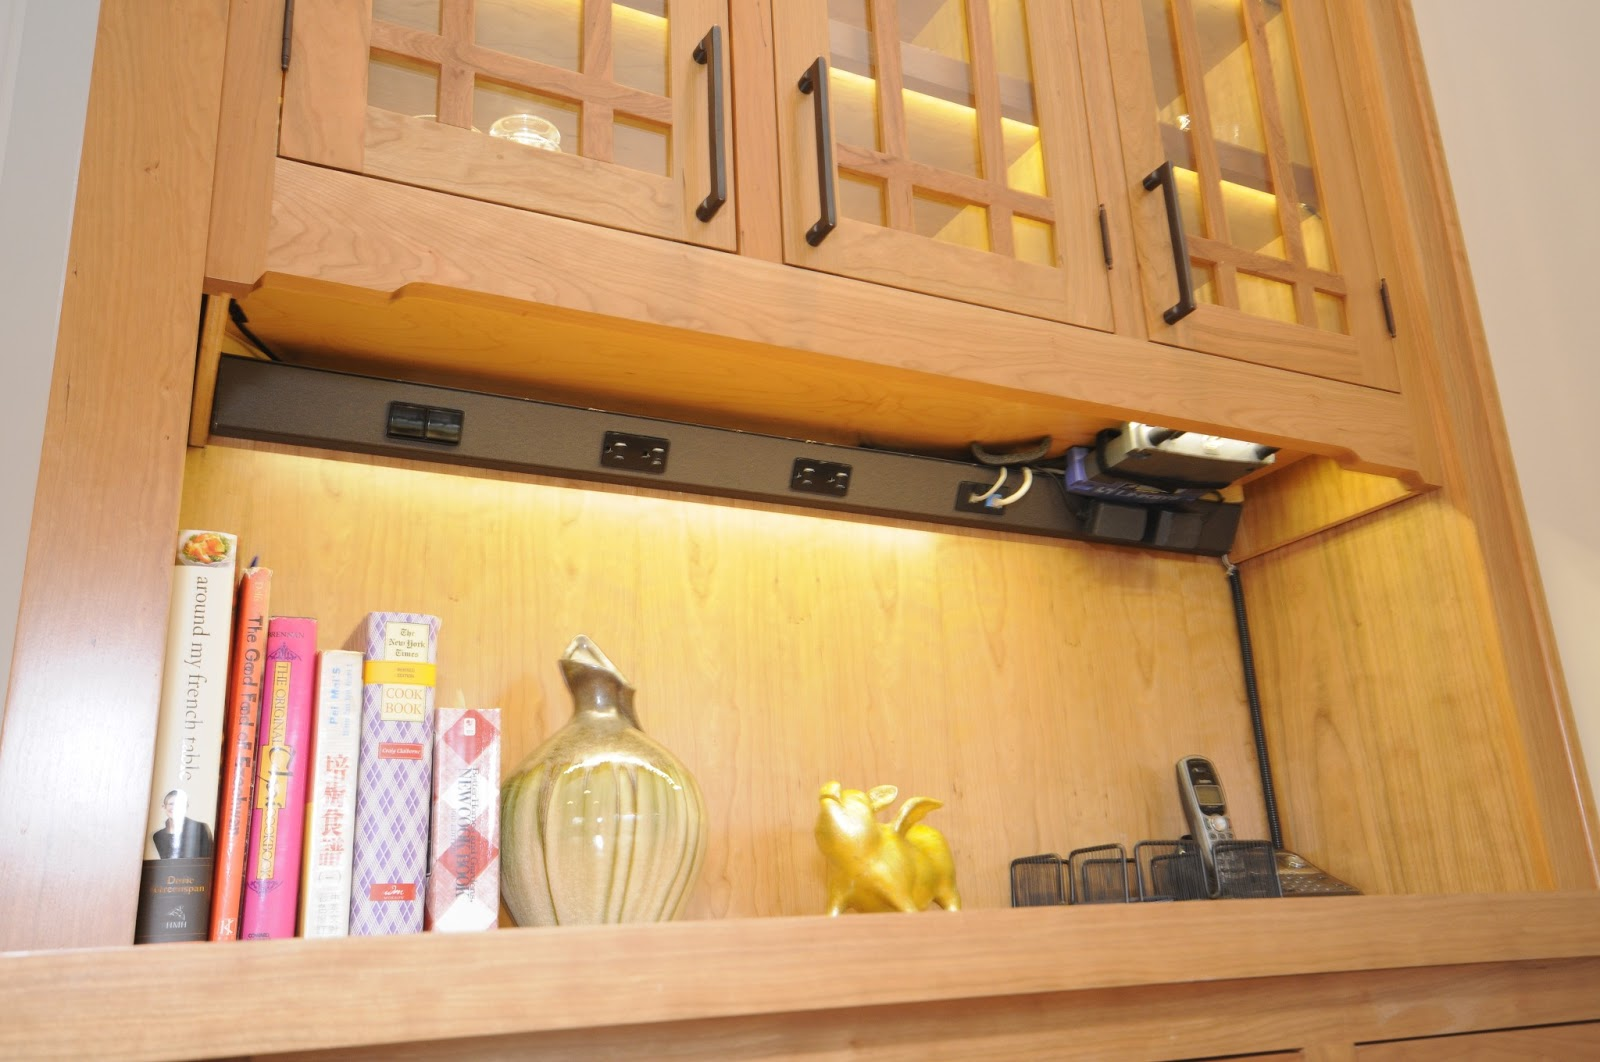 and phone, all concealed in a near invisible strip under the cabinets